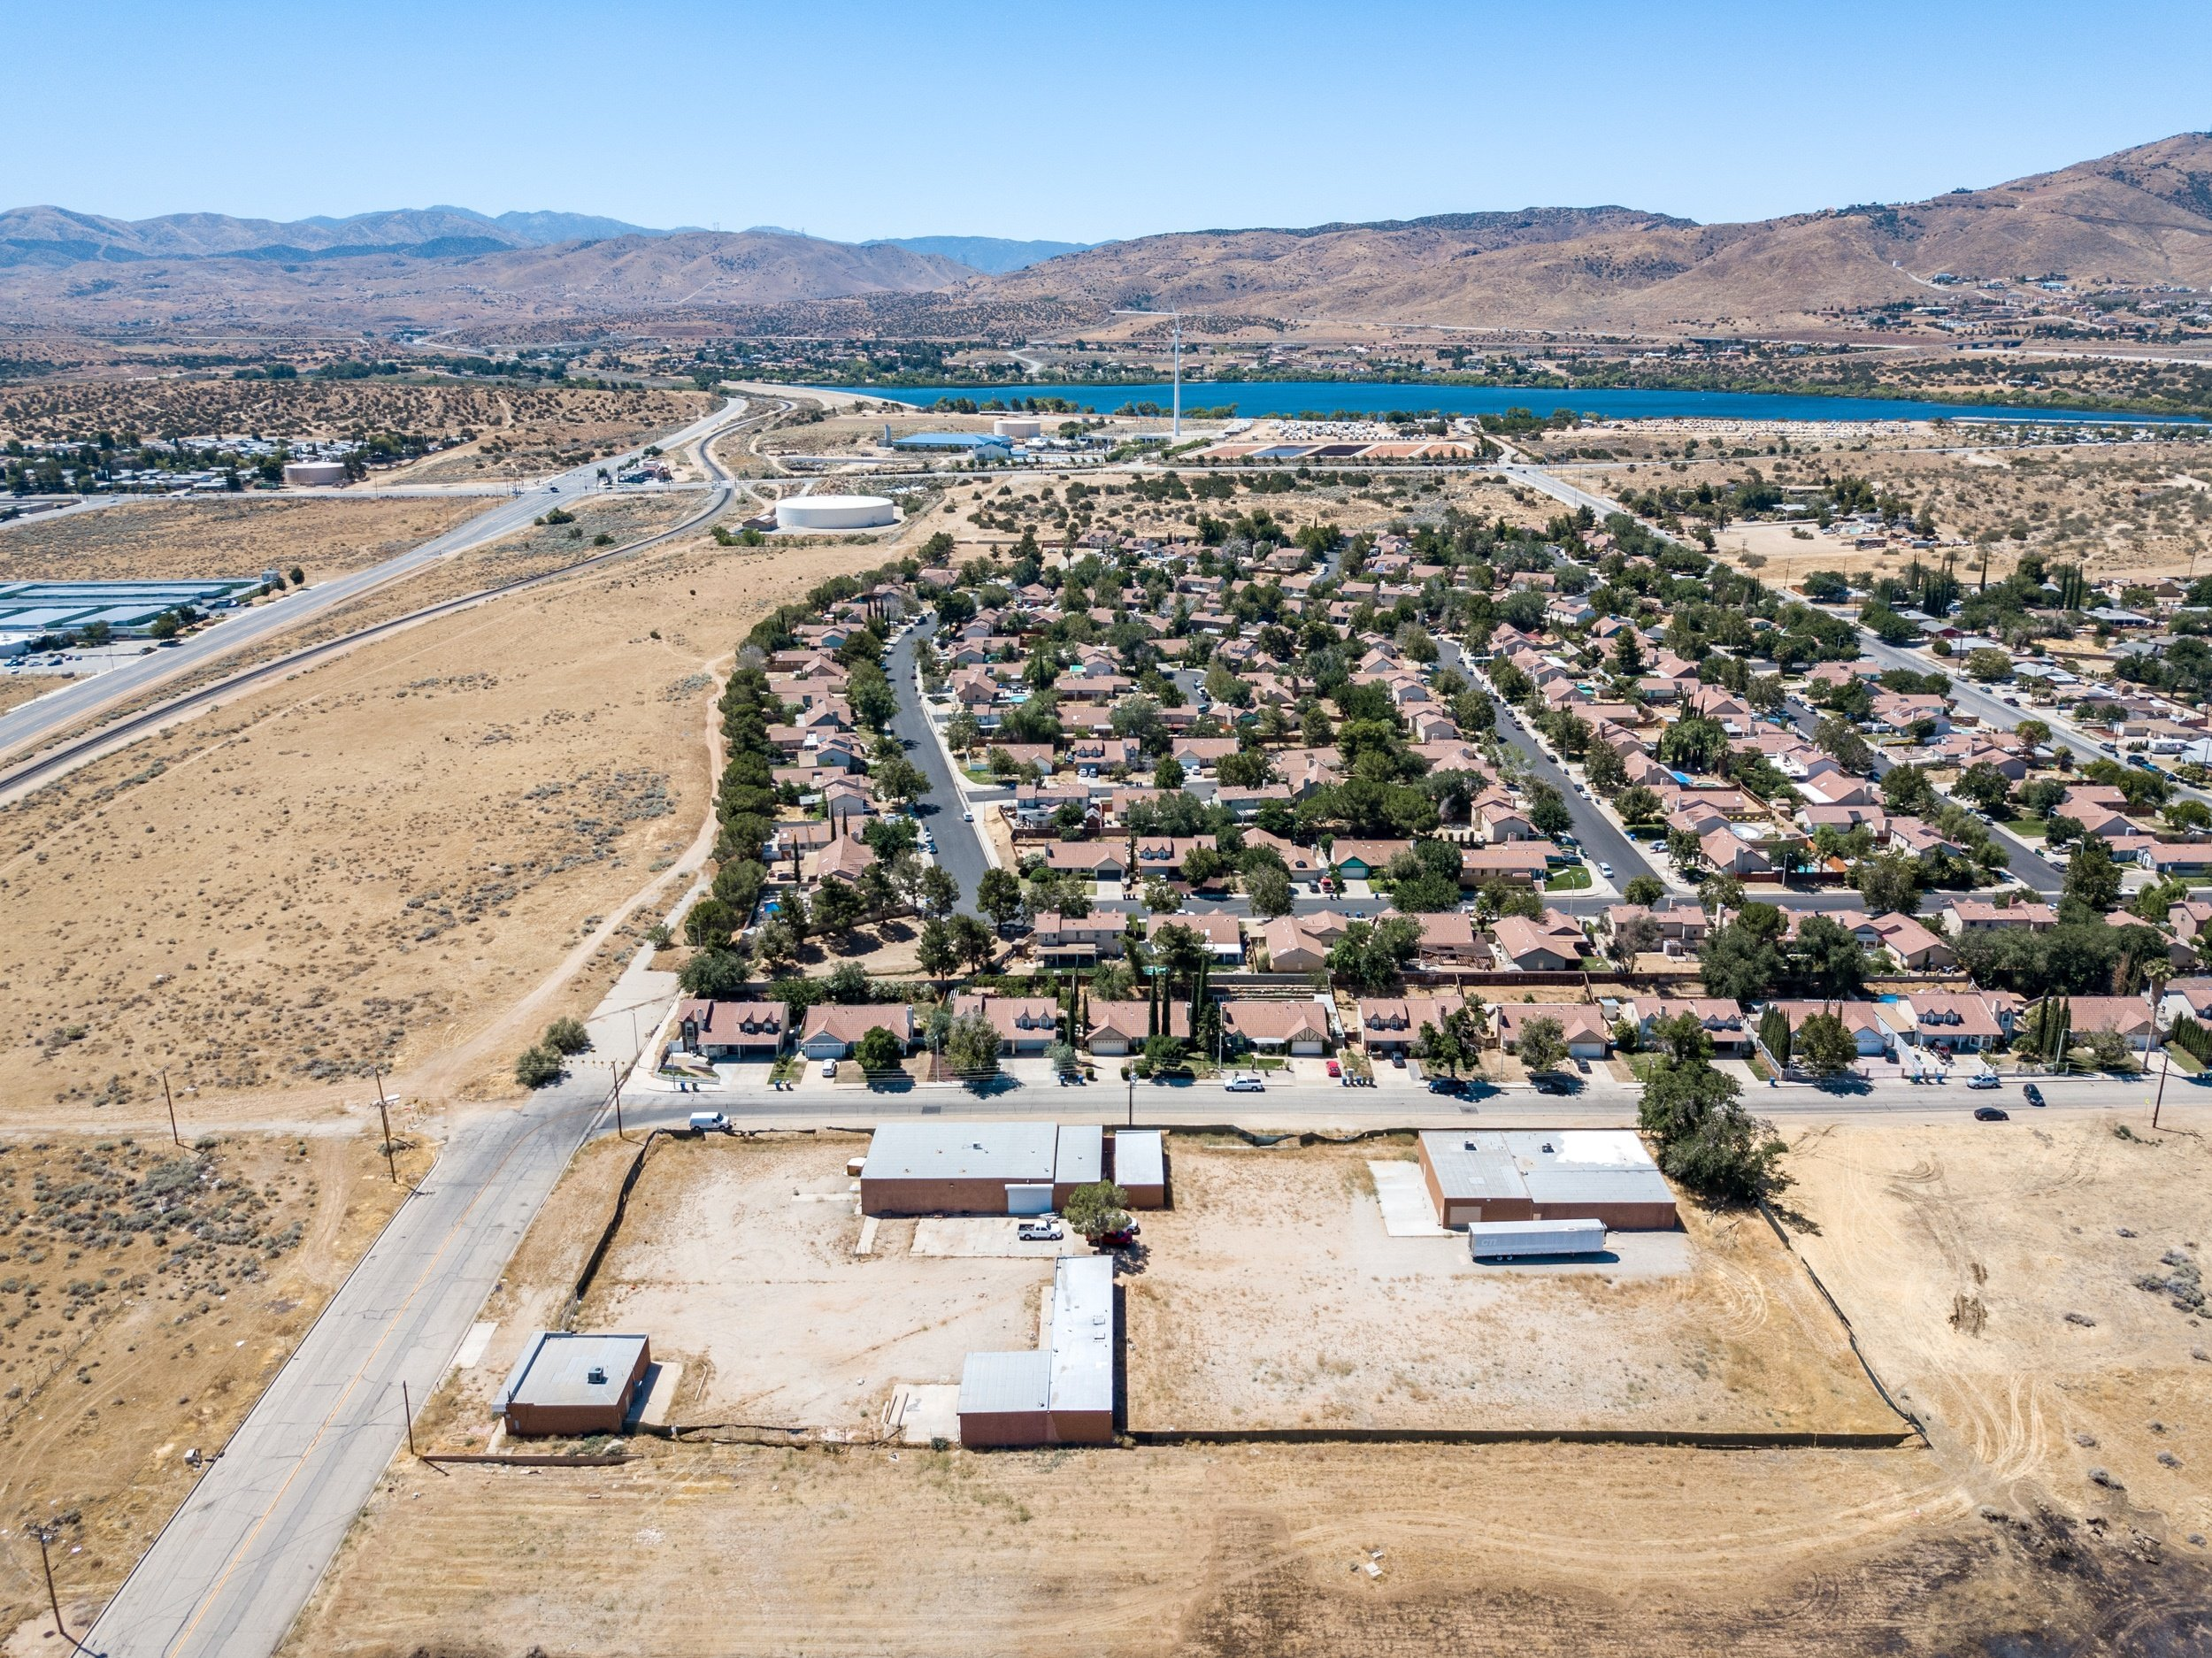 Palmdale Industrial Real Estate Building Four Drone Two